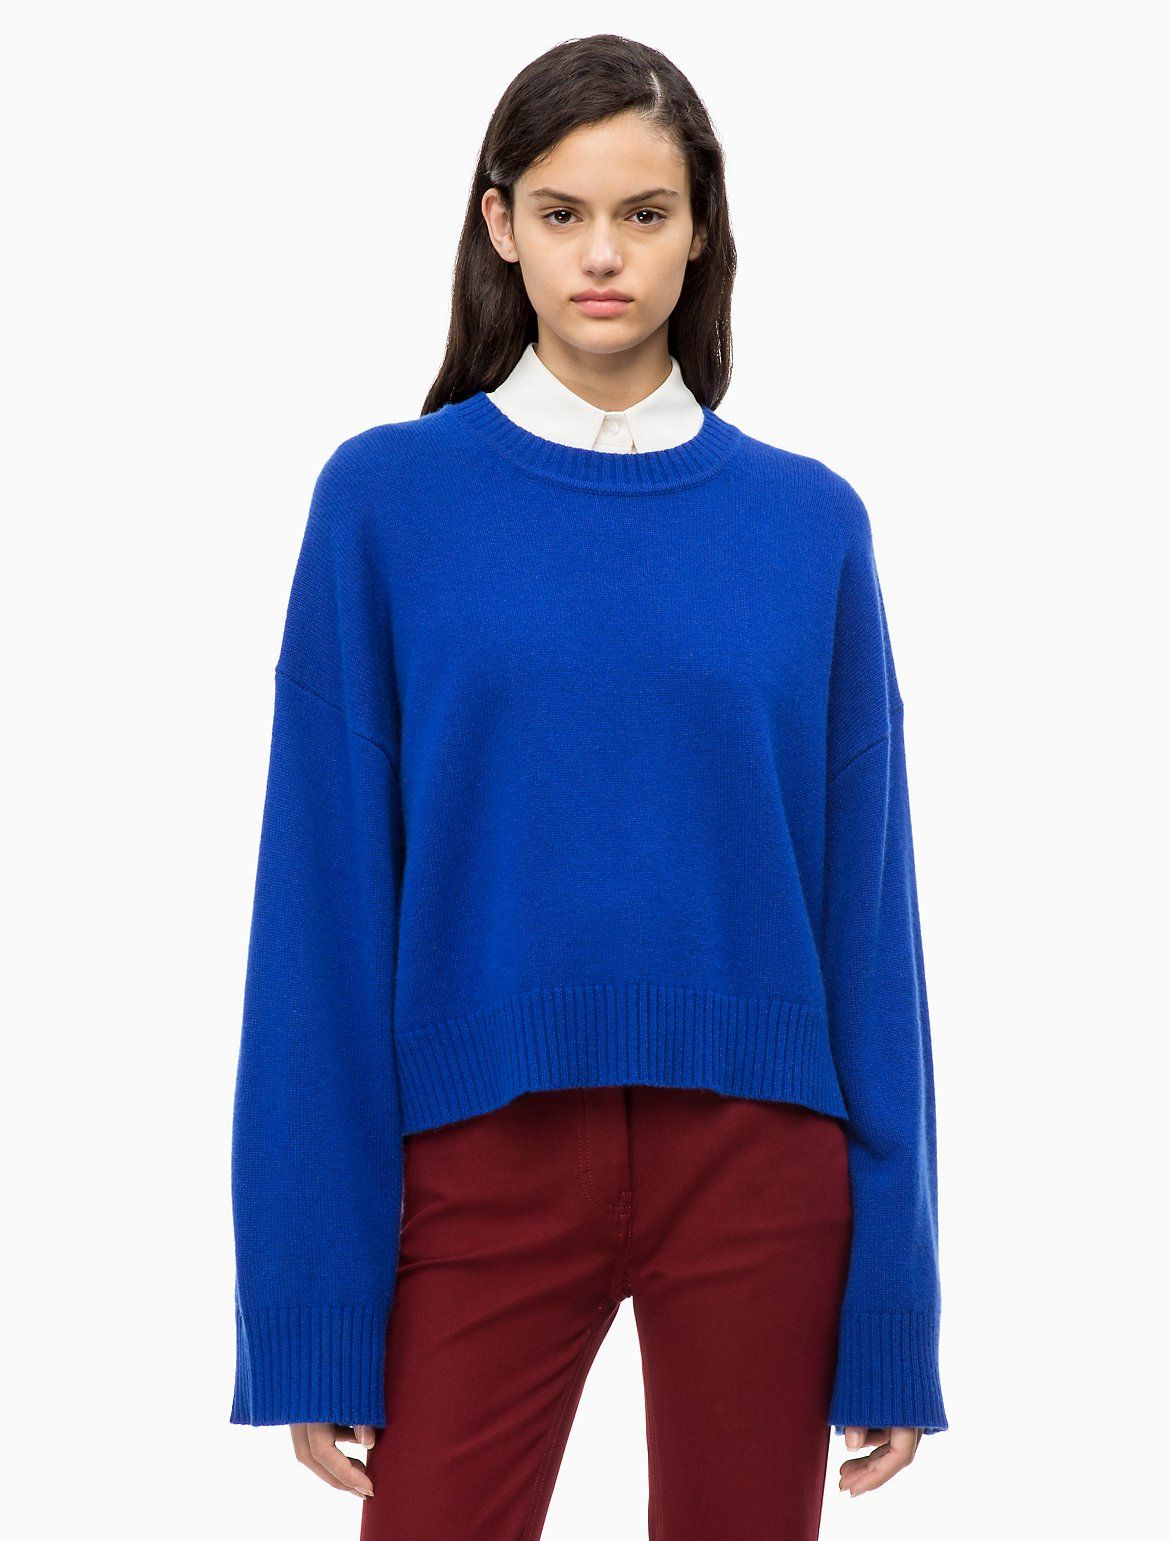 Photo of Relaxed Fit Cashmere Sweater